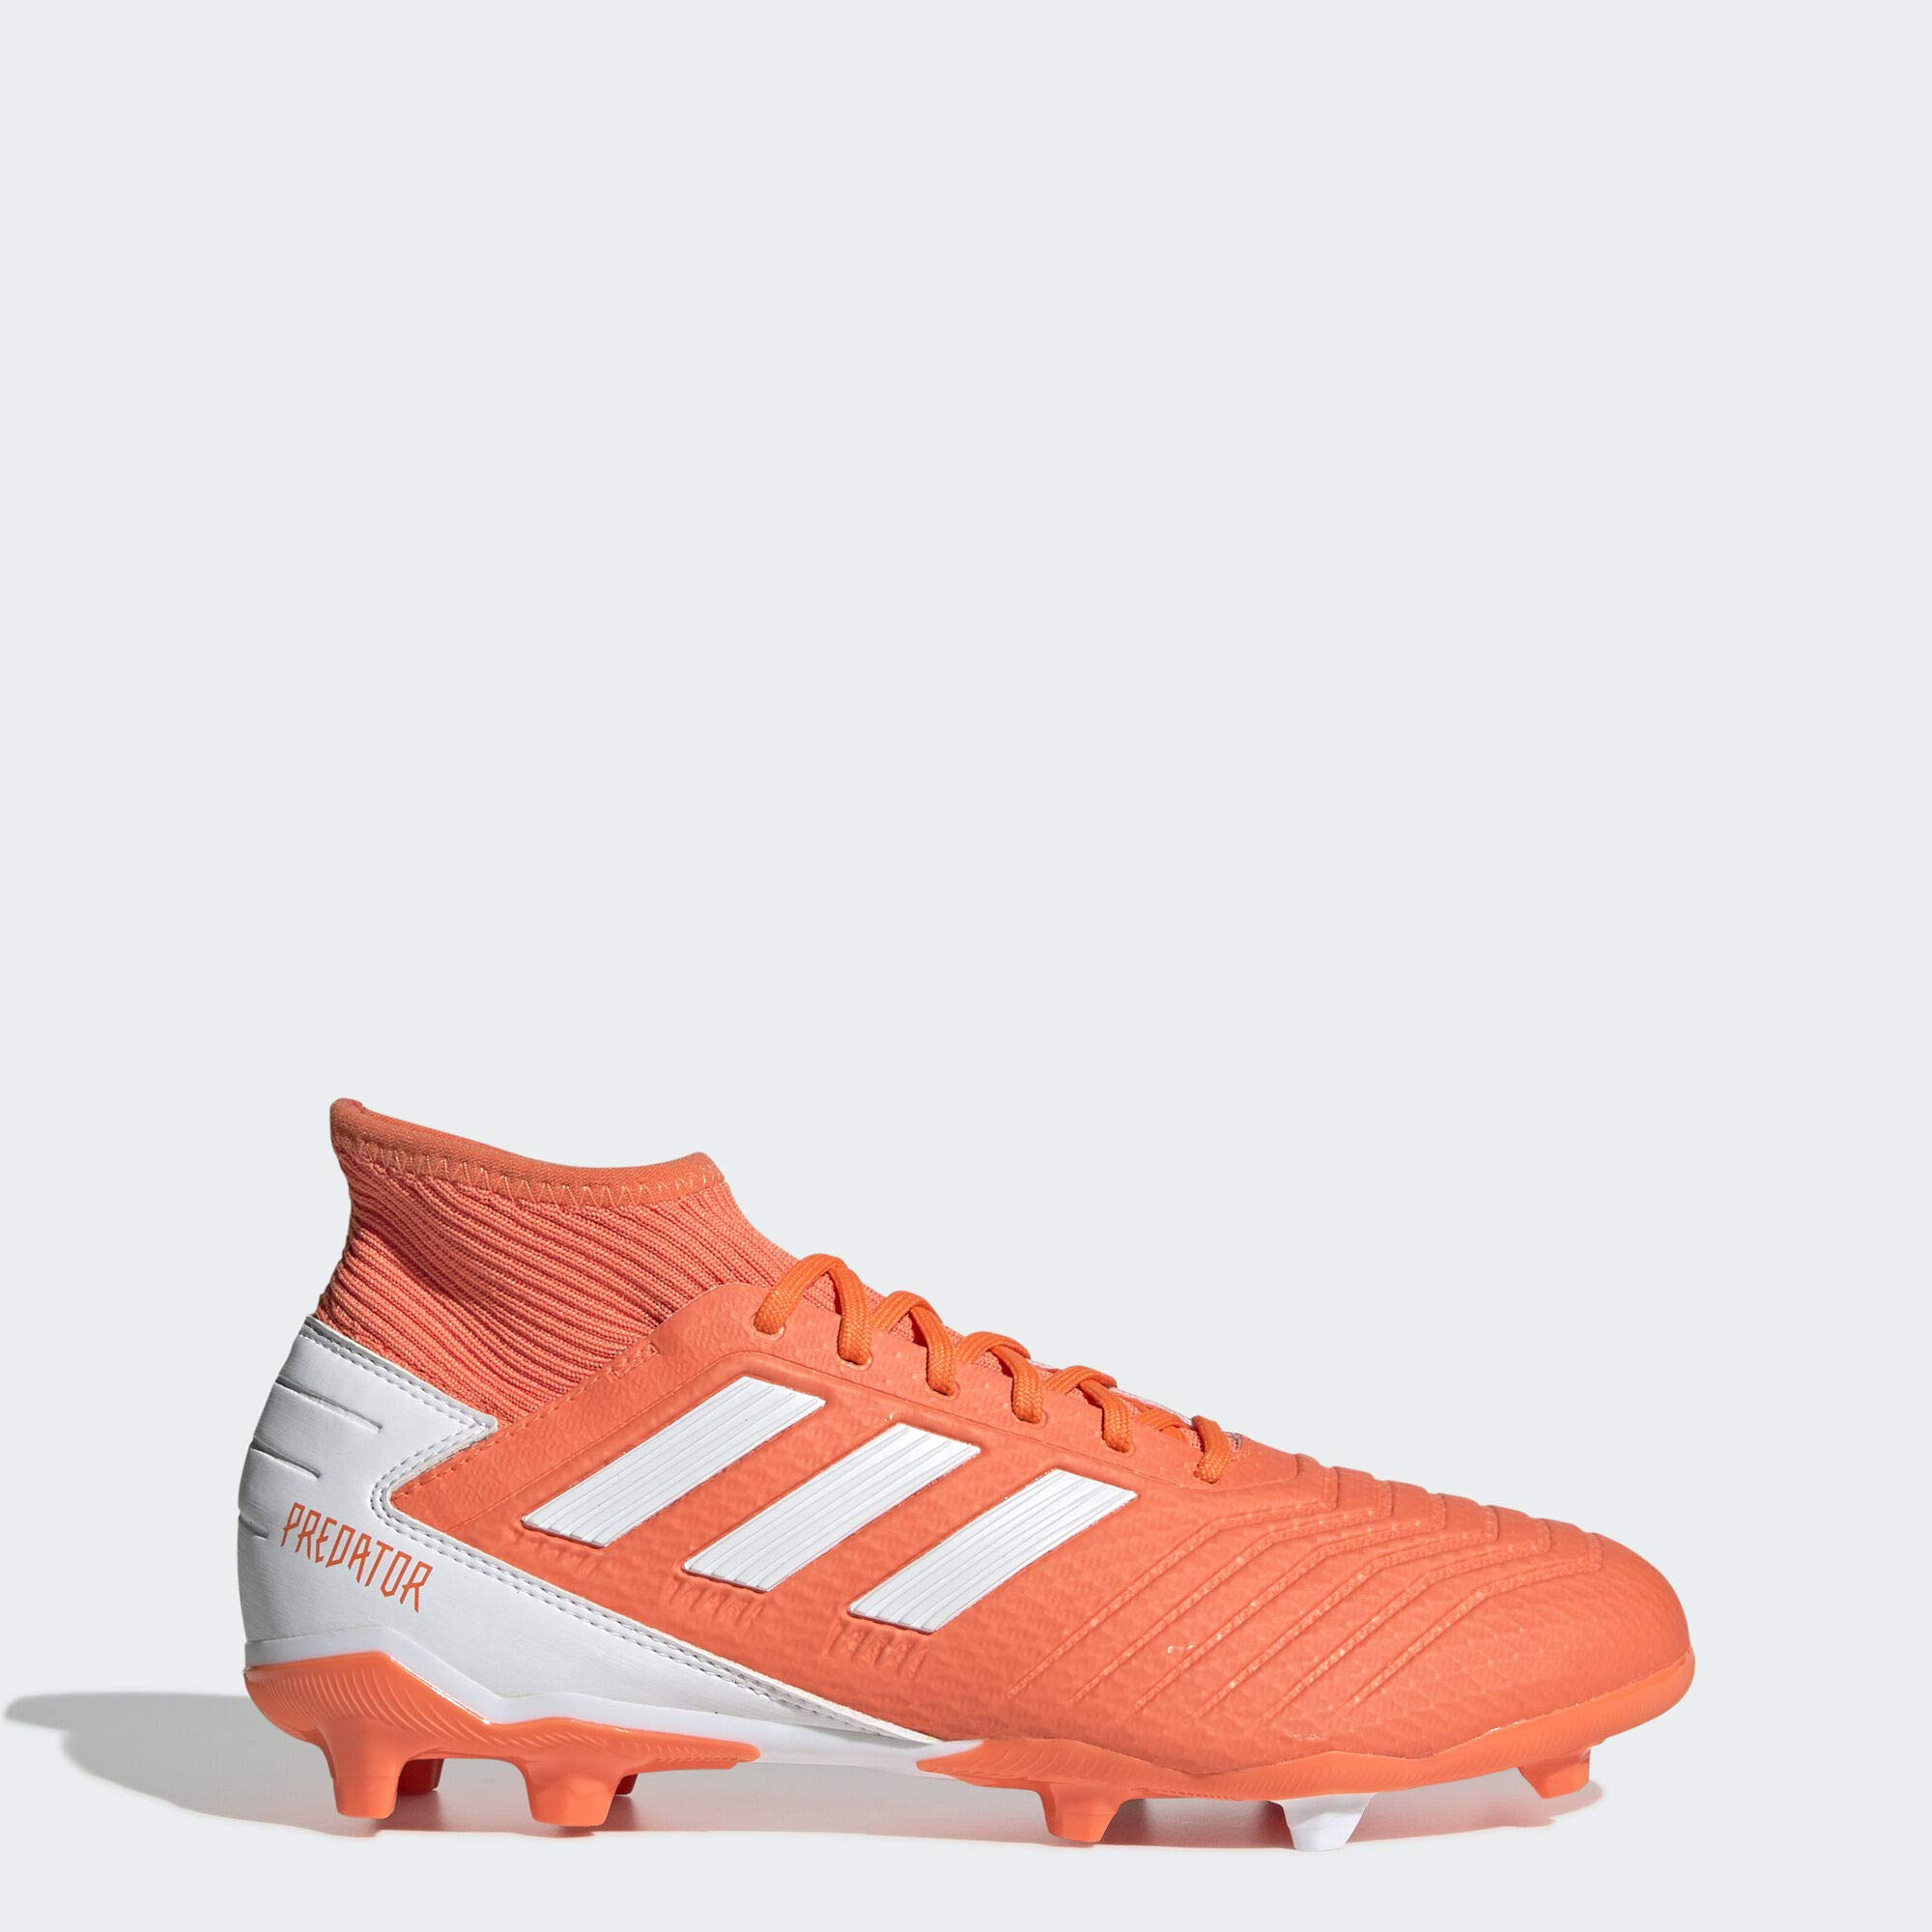 adidas Predator 19.3 Firm Ground Soccer Shoe, hi-res Coral/White/Glow Pink, 7 M US by adidas